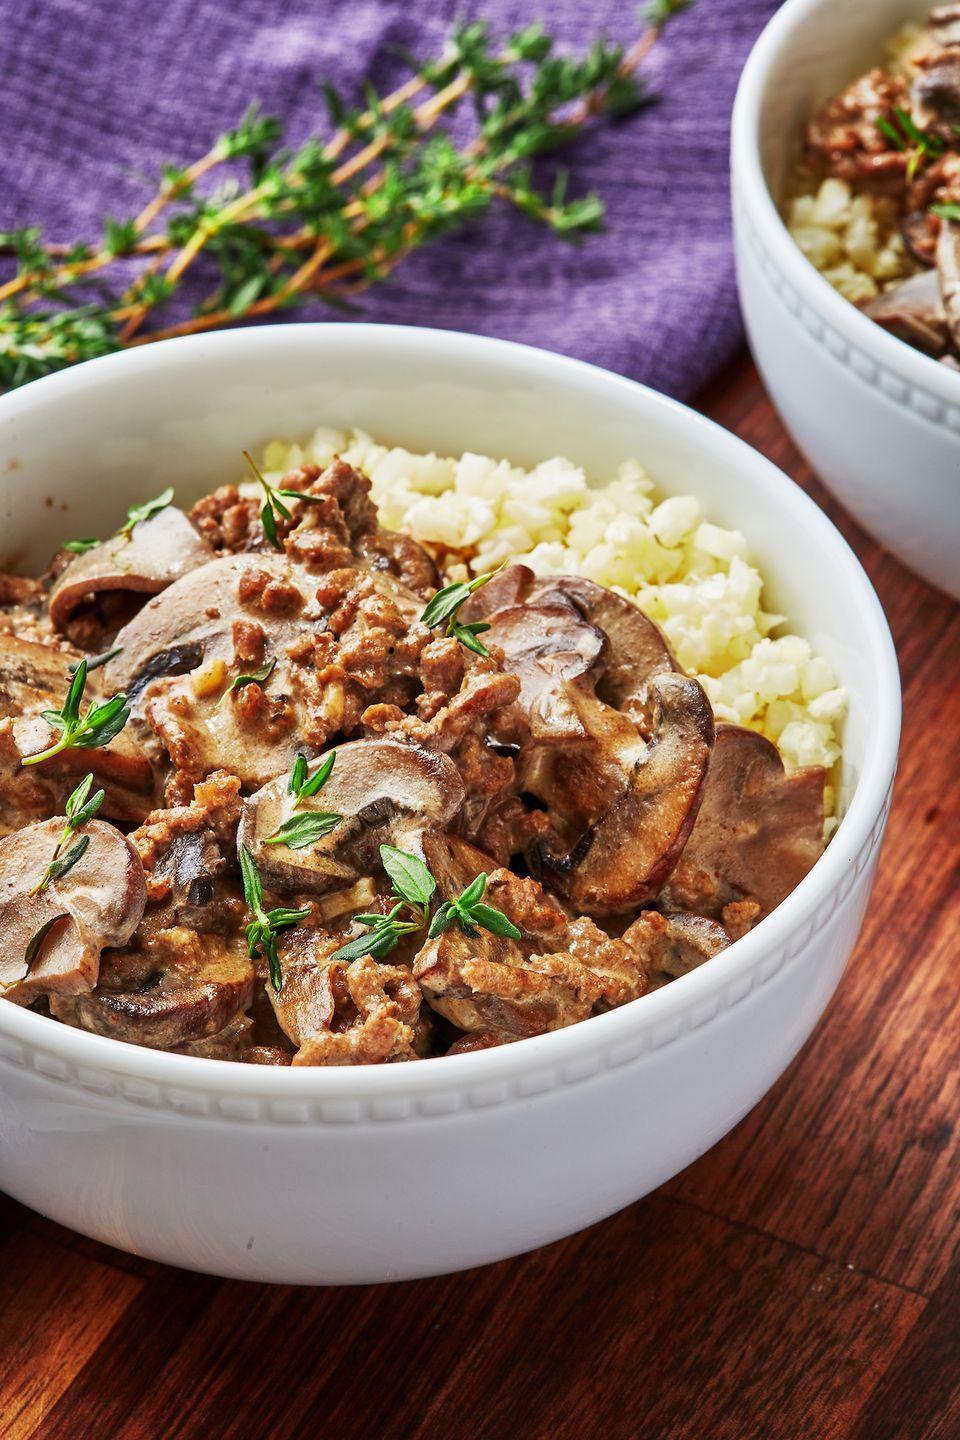 """<p>This sauce is amazingly rich and luscious.</p><p>Get the recipe from <a href=""""https://www.delish.com/cooking/recipe-ideas/a30707105/keto-beef-stroganoff-recipe/"""" rel=""""nofollow noopener"""" target=""""_blank"""" data-ylk=""""slk:Delish."""" class=""""link rapid-noclick-resp"""">Delish. </a></p>"""